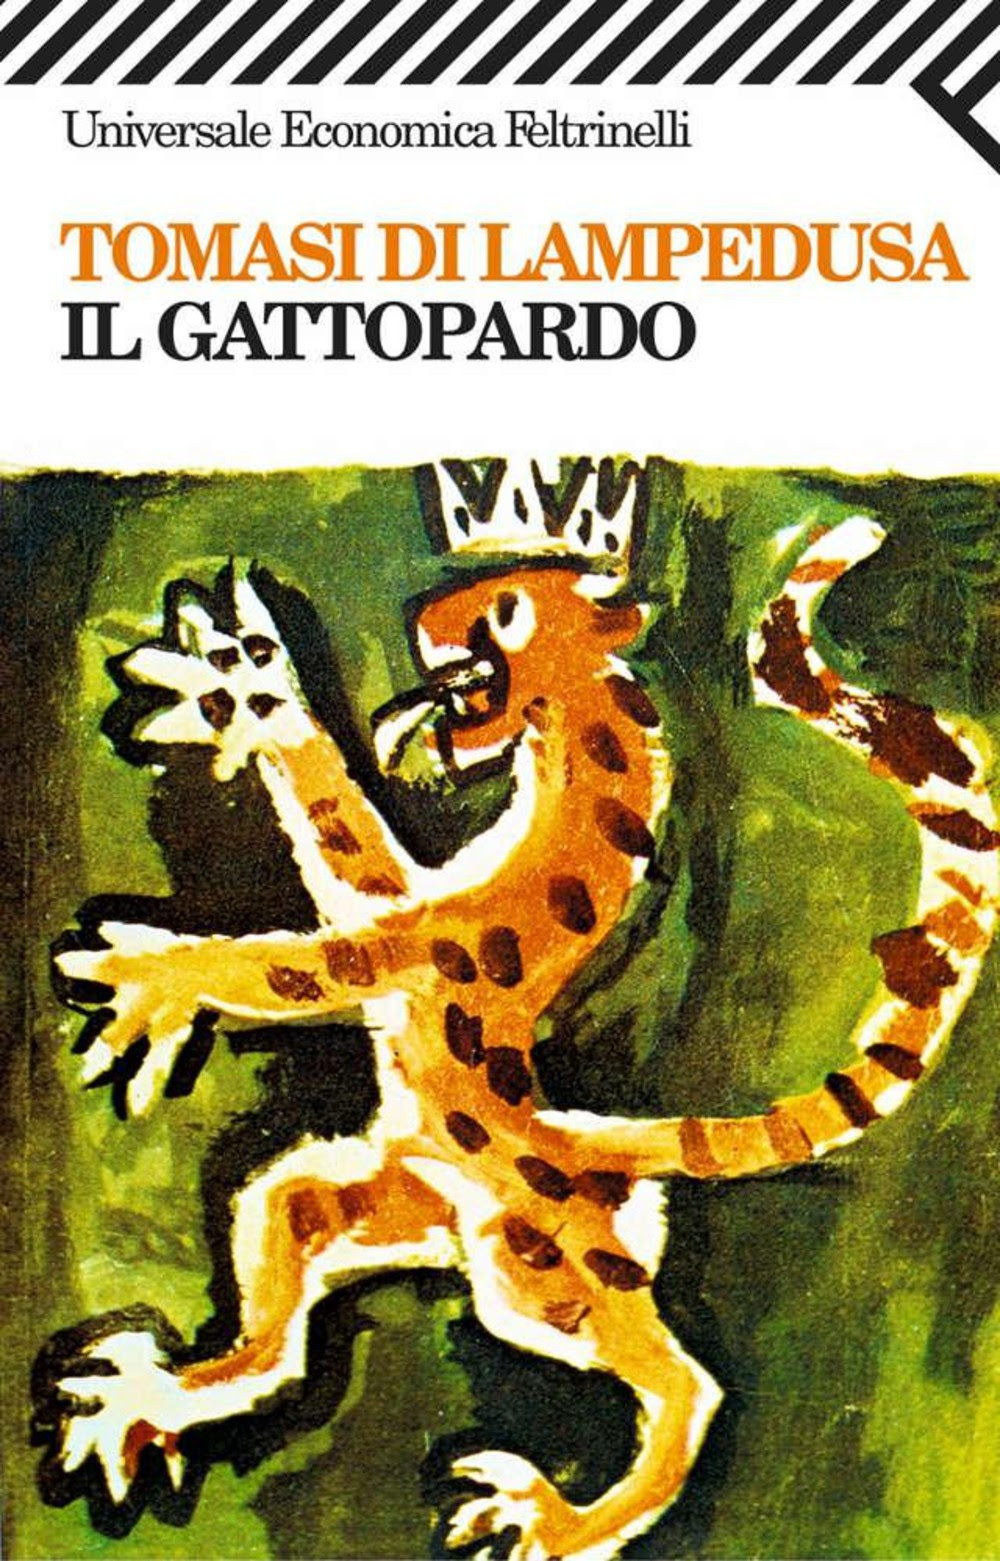 http://recensionilibri.org/wp-content/uploads/2014/03/cover4.jpg